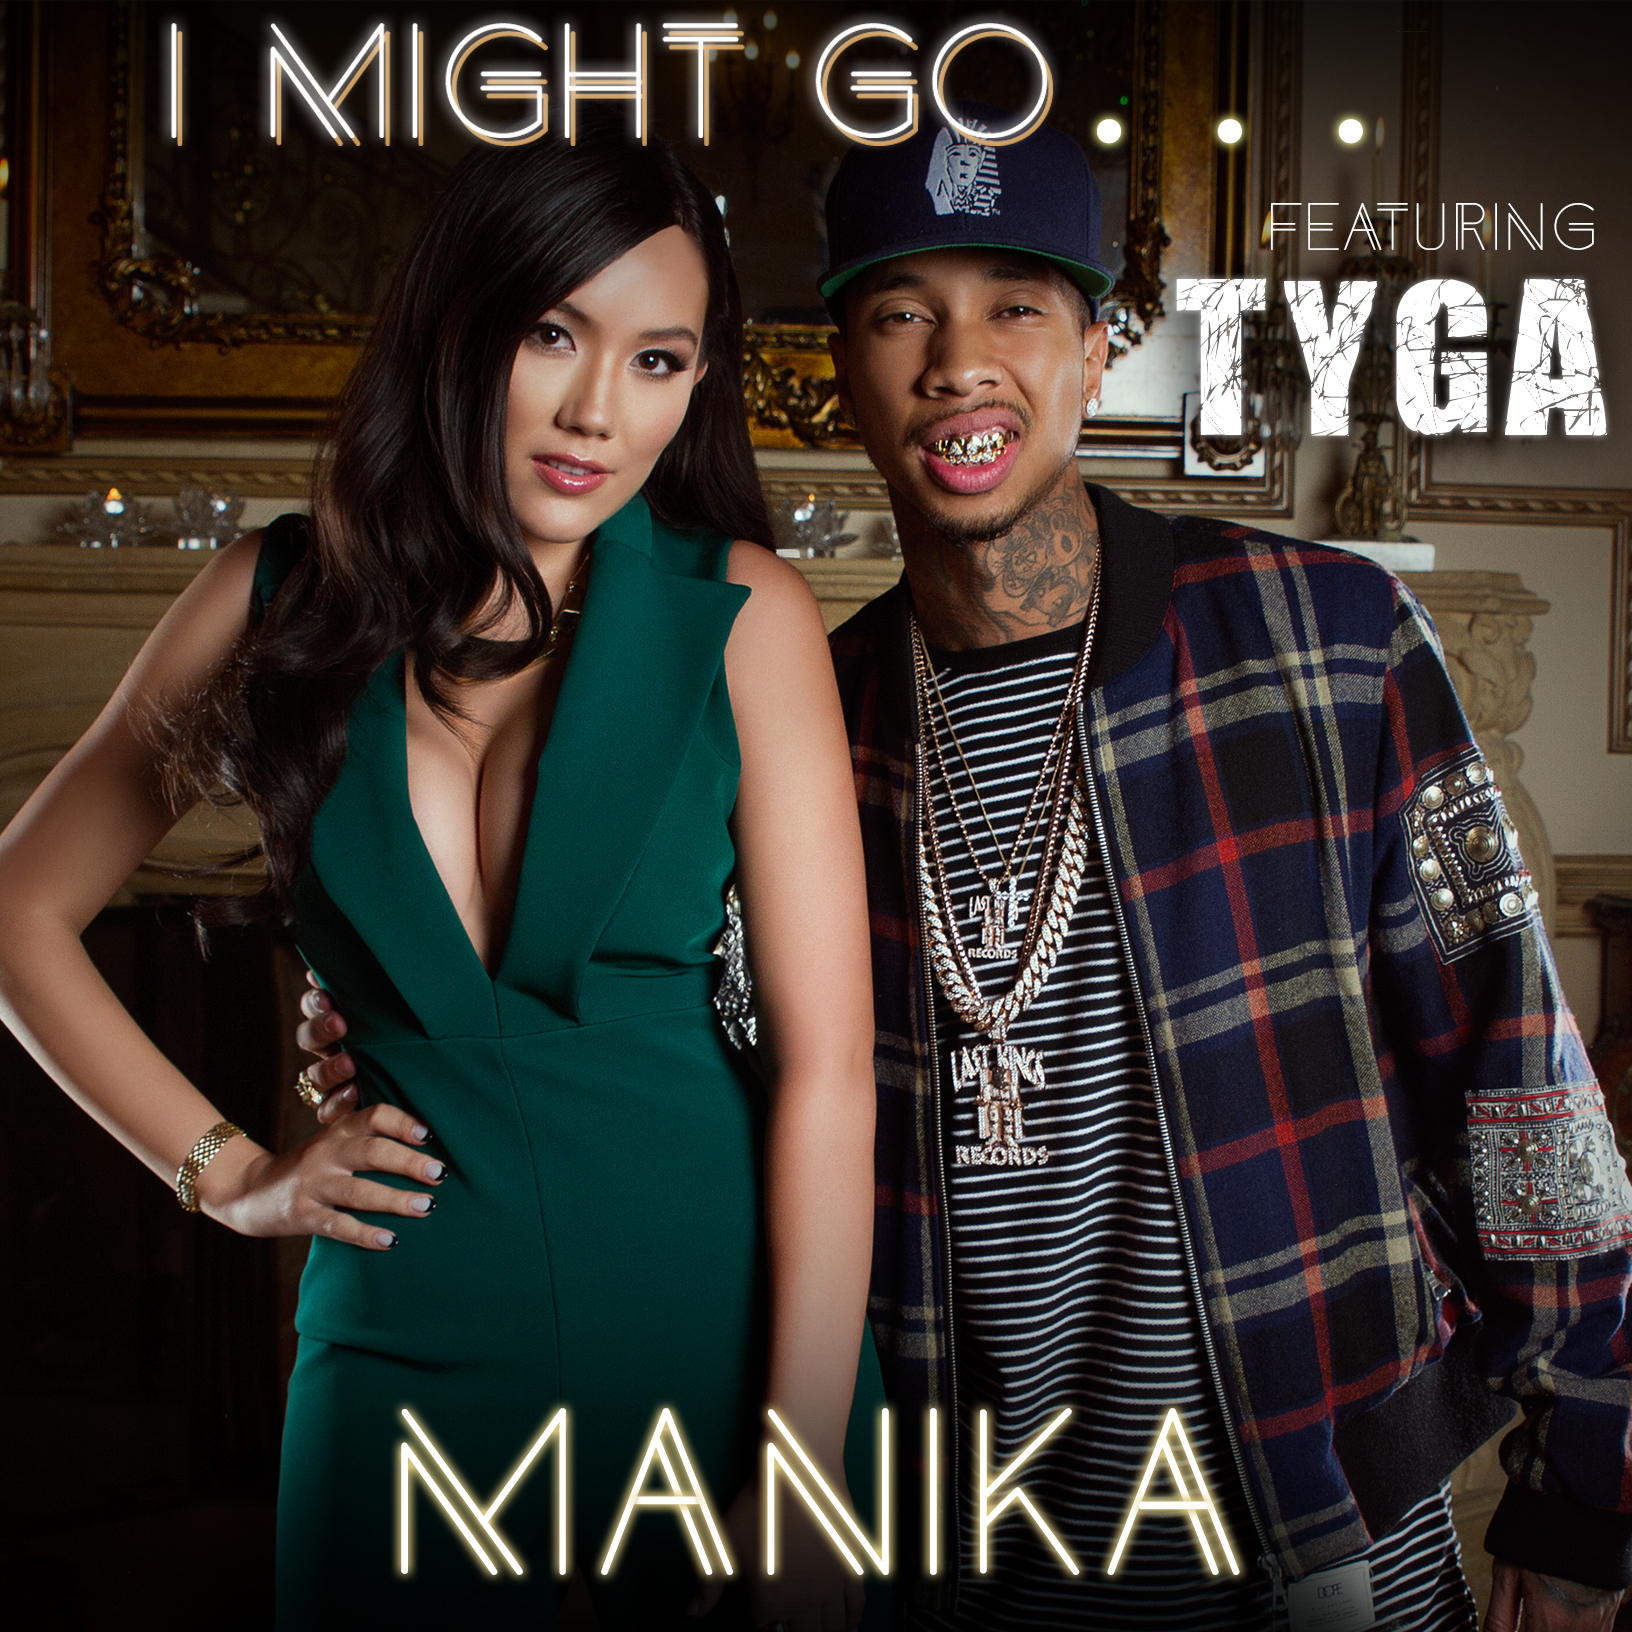 MANIKA I Might Go... (feat. Tyga)